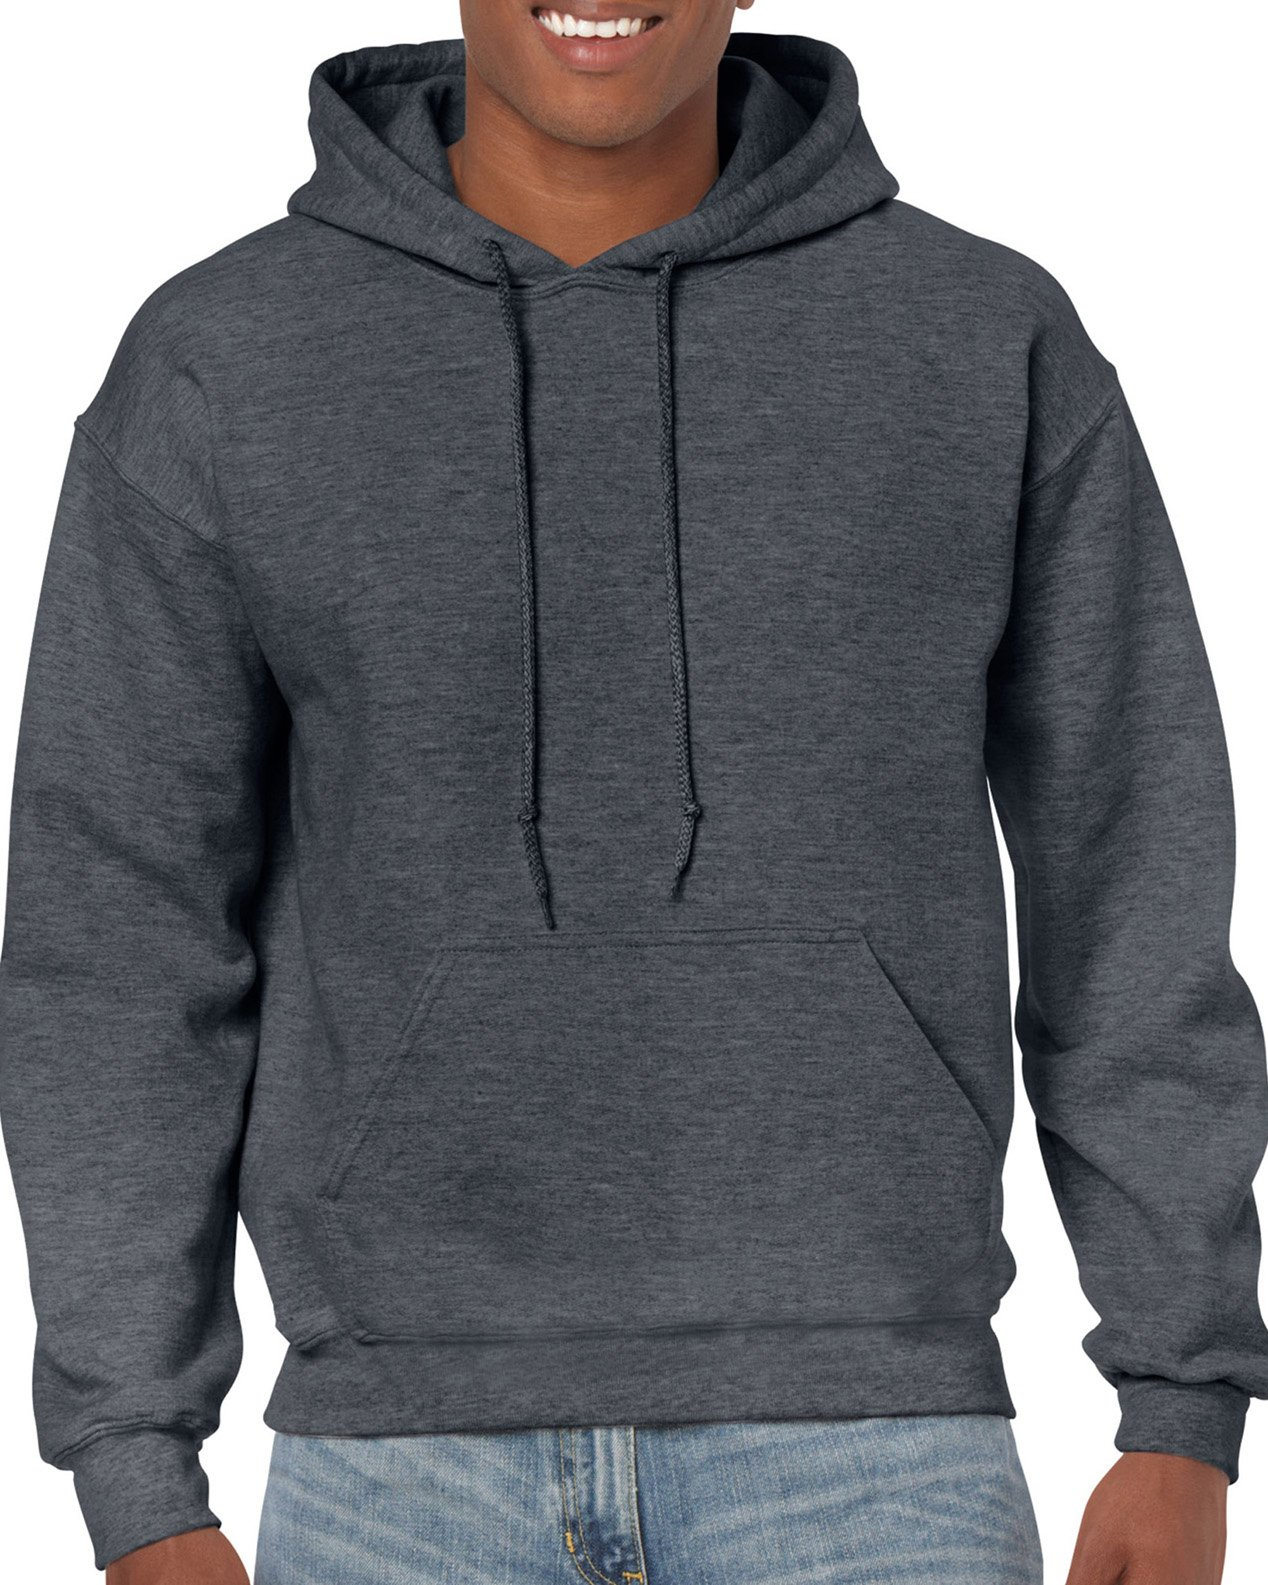 Gildan Men's Big and Tall Heavy Blend Fleece Hooded Sweatshirt G18500, Dark Heather, XX-Large by Gildan